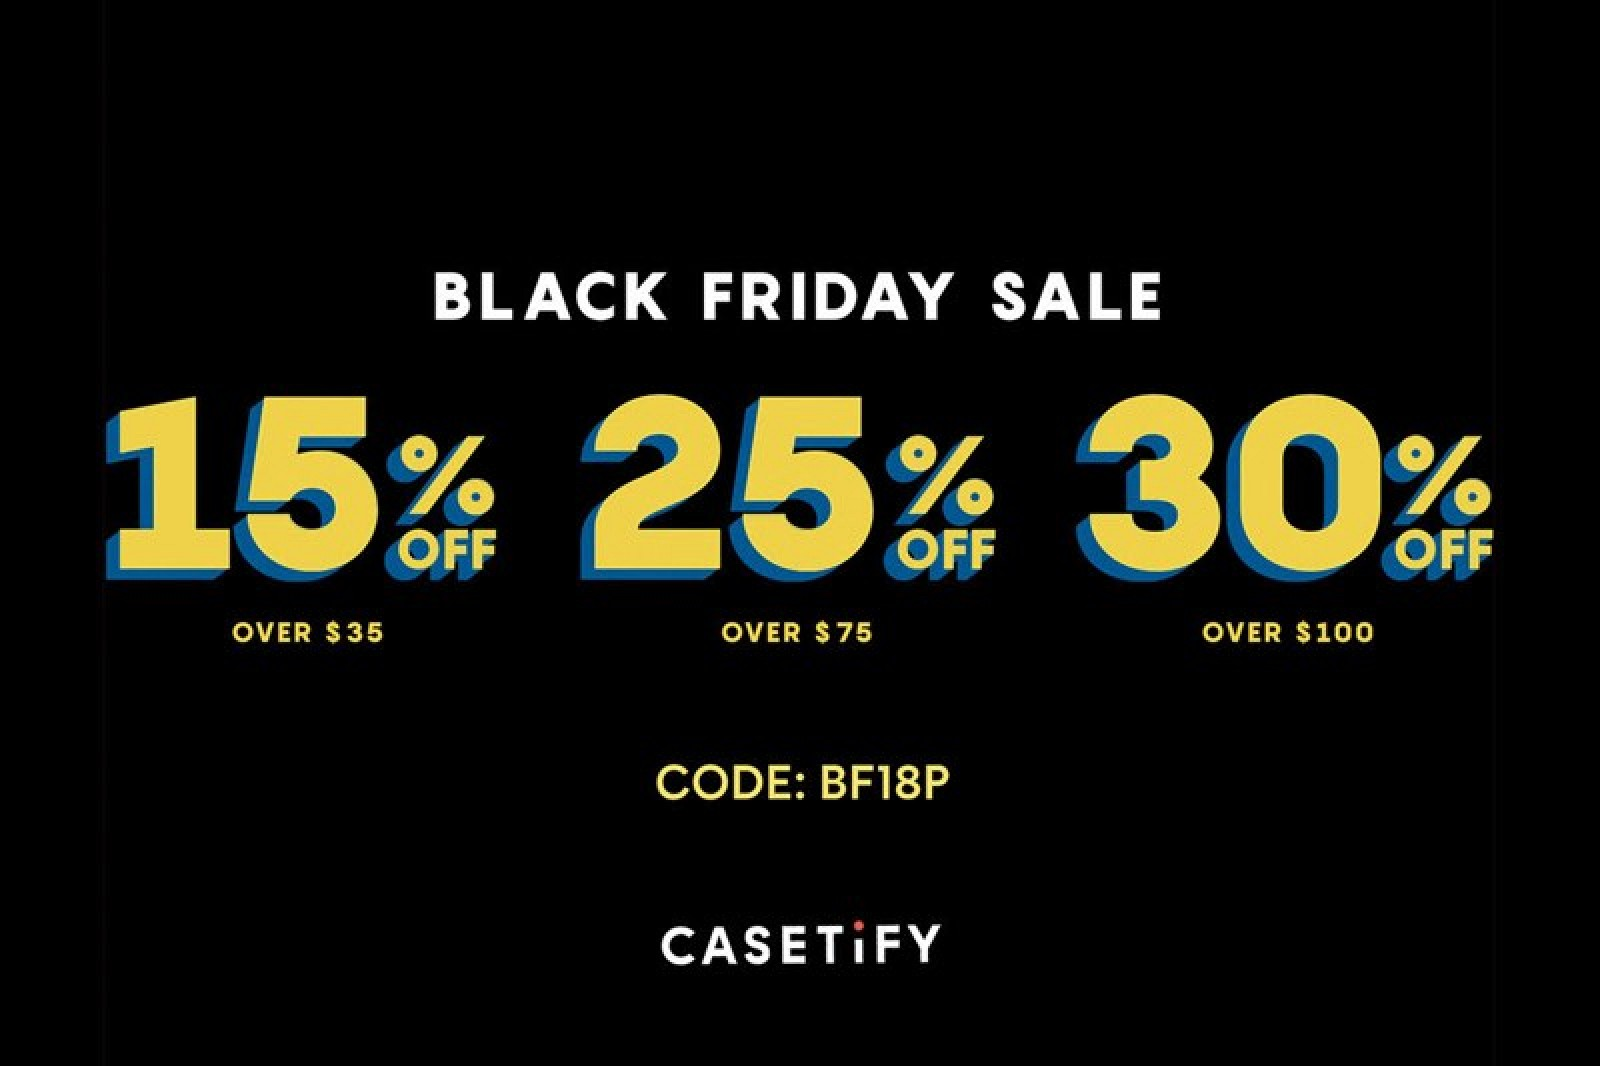 Casetify Black Friday sale banner showing its discounts: 15%, 25%, 30% and its code BF18P.